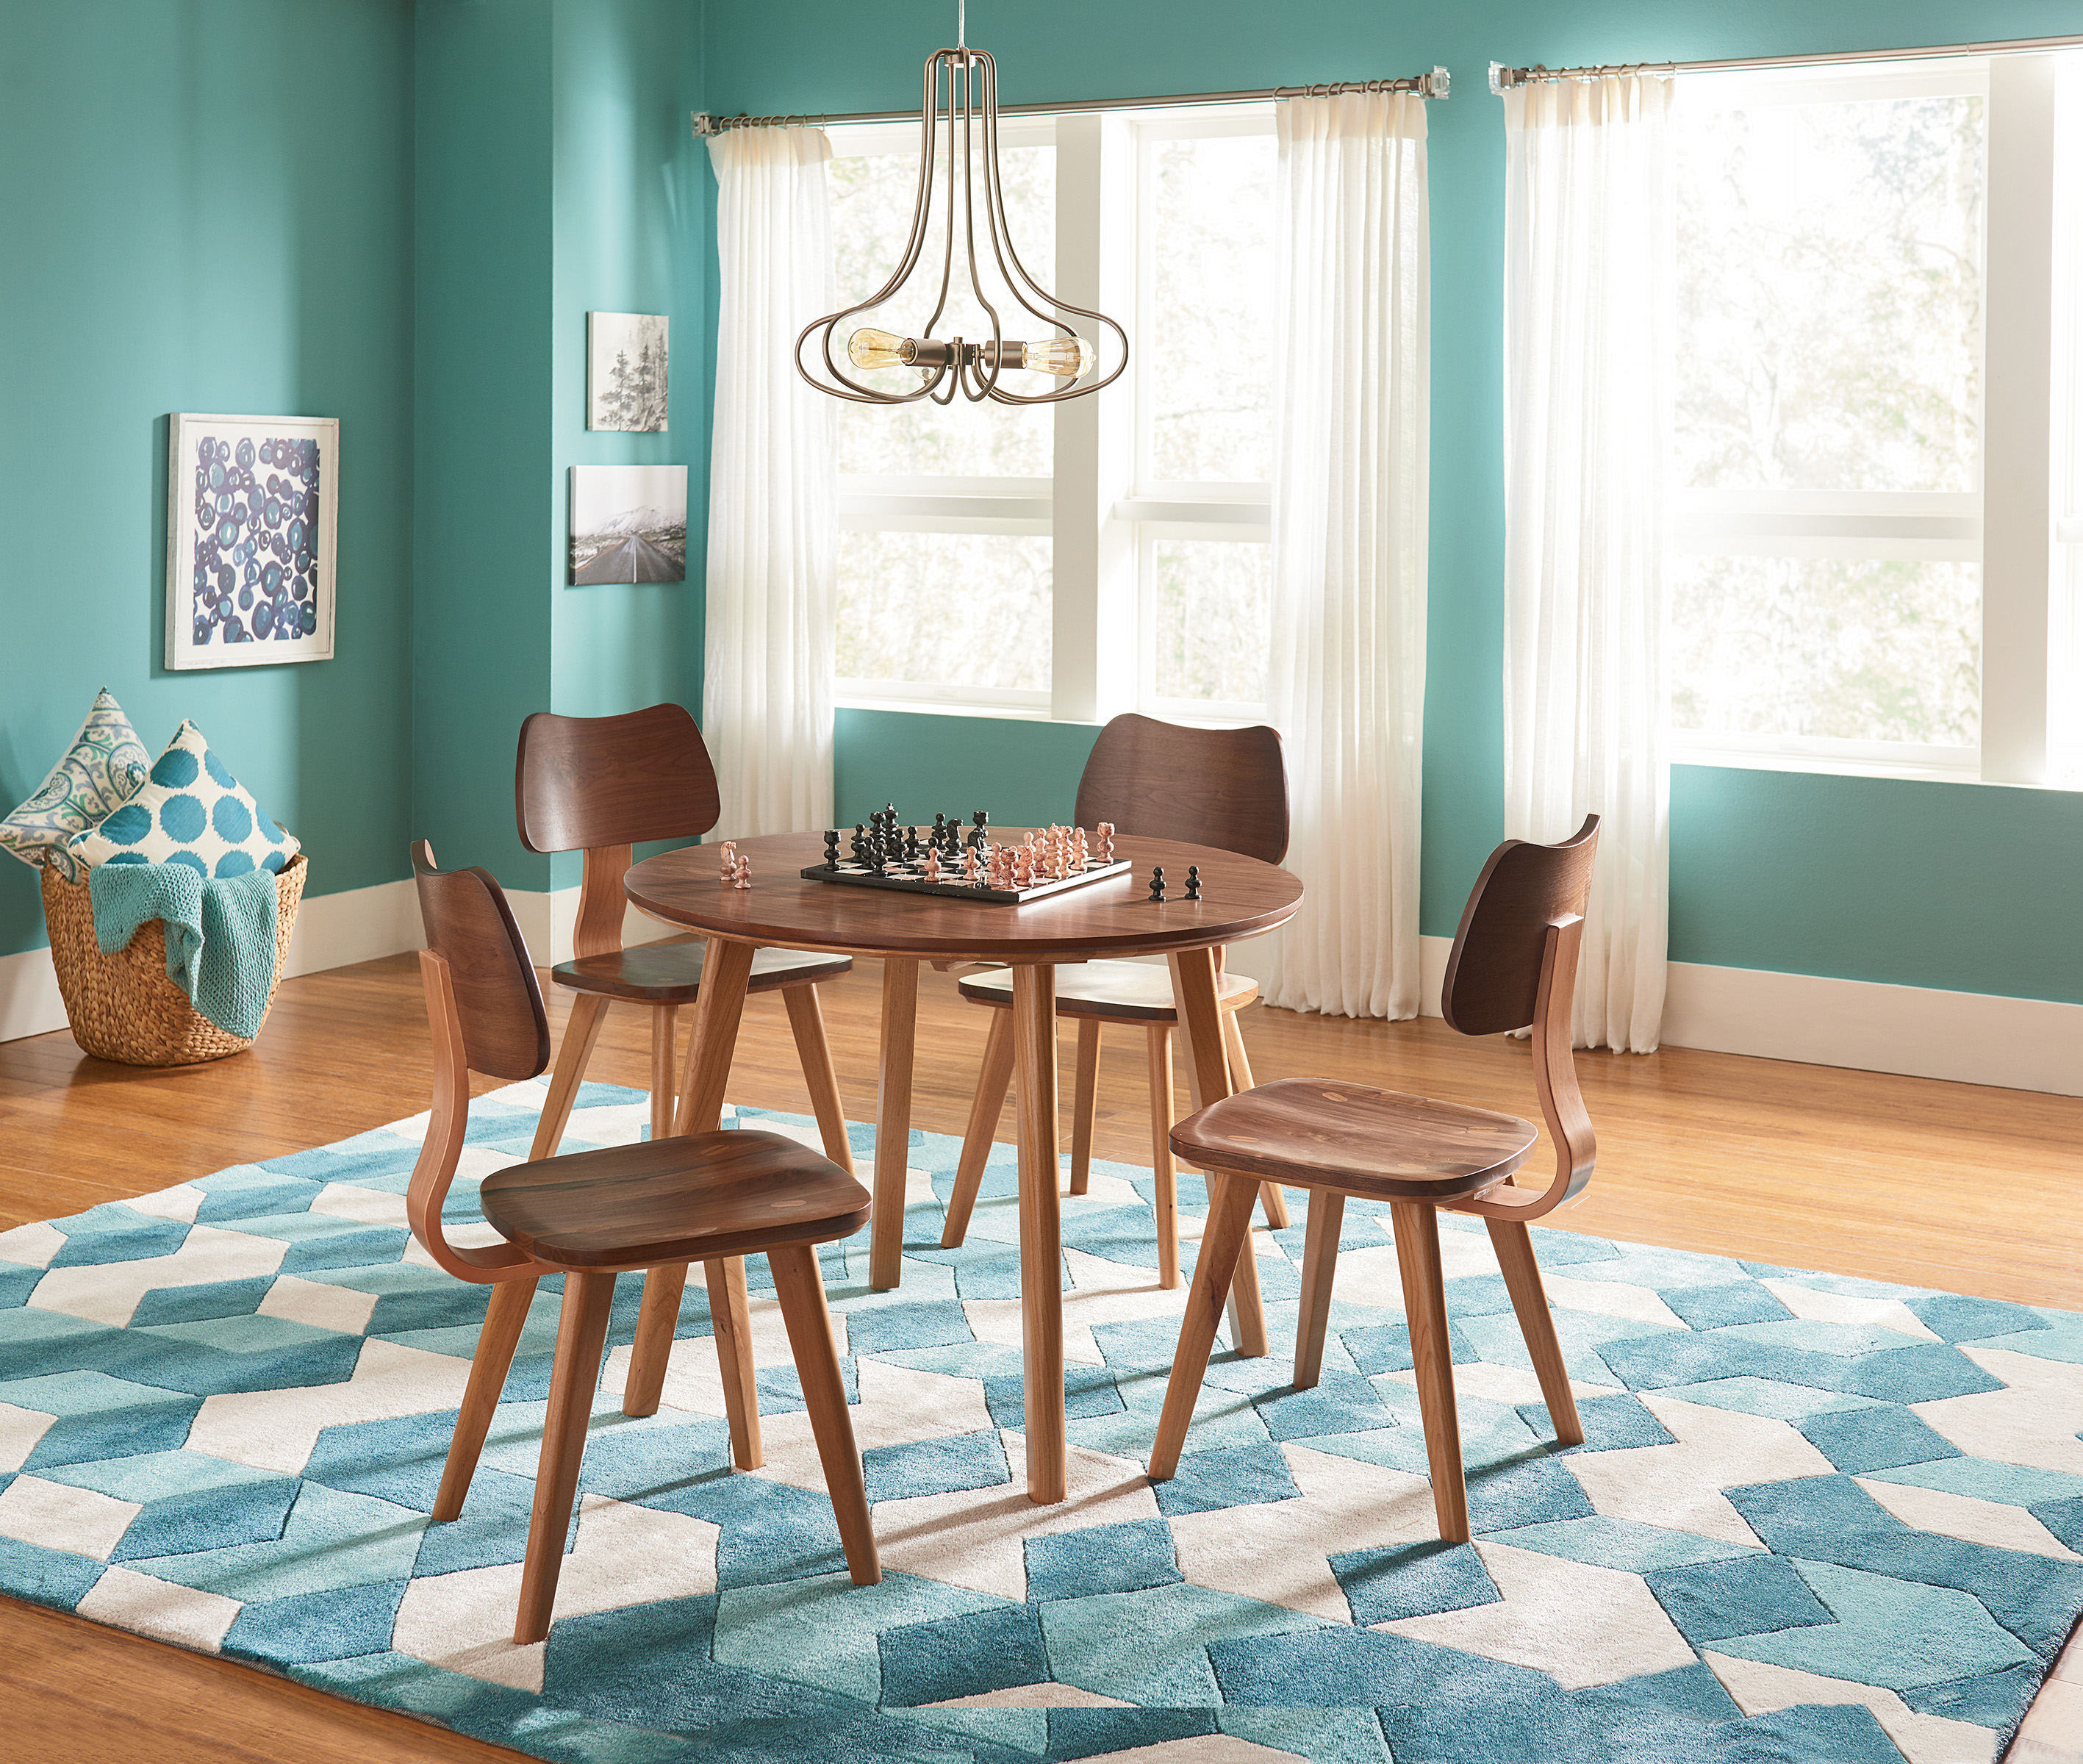 Addi - Whittier Wood Furniture